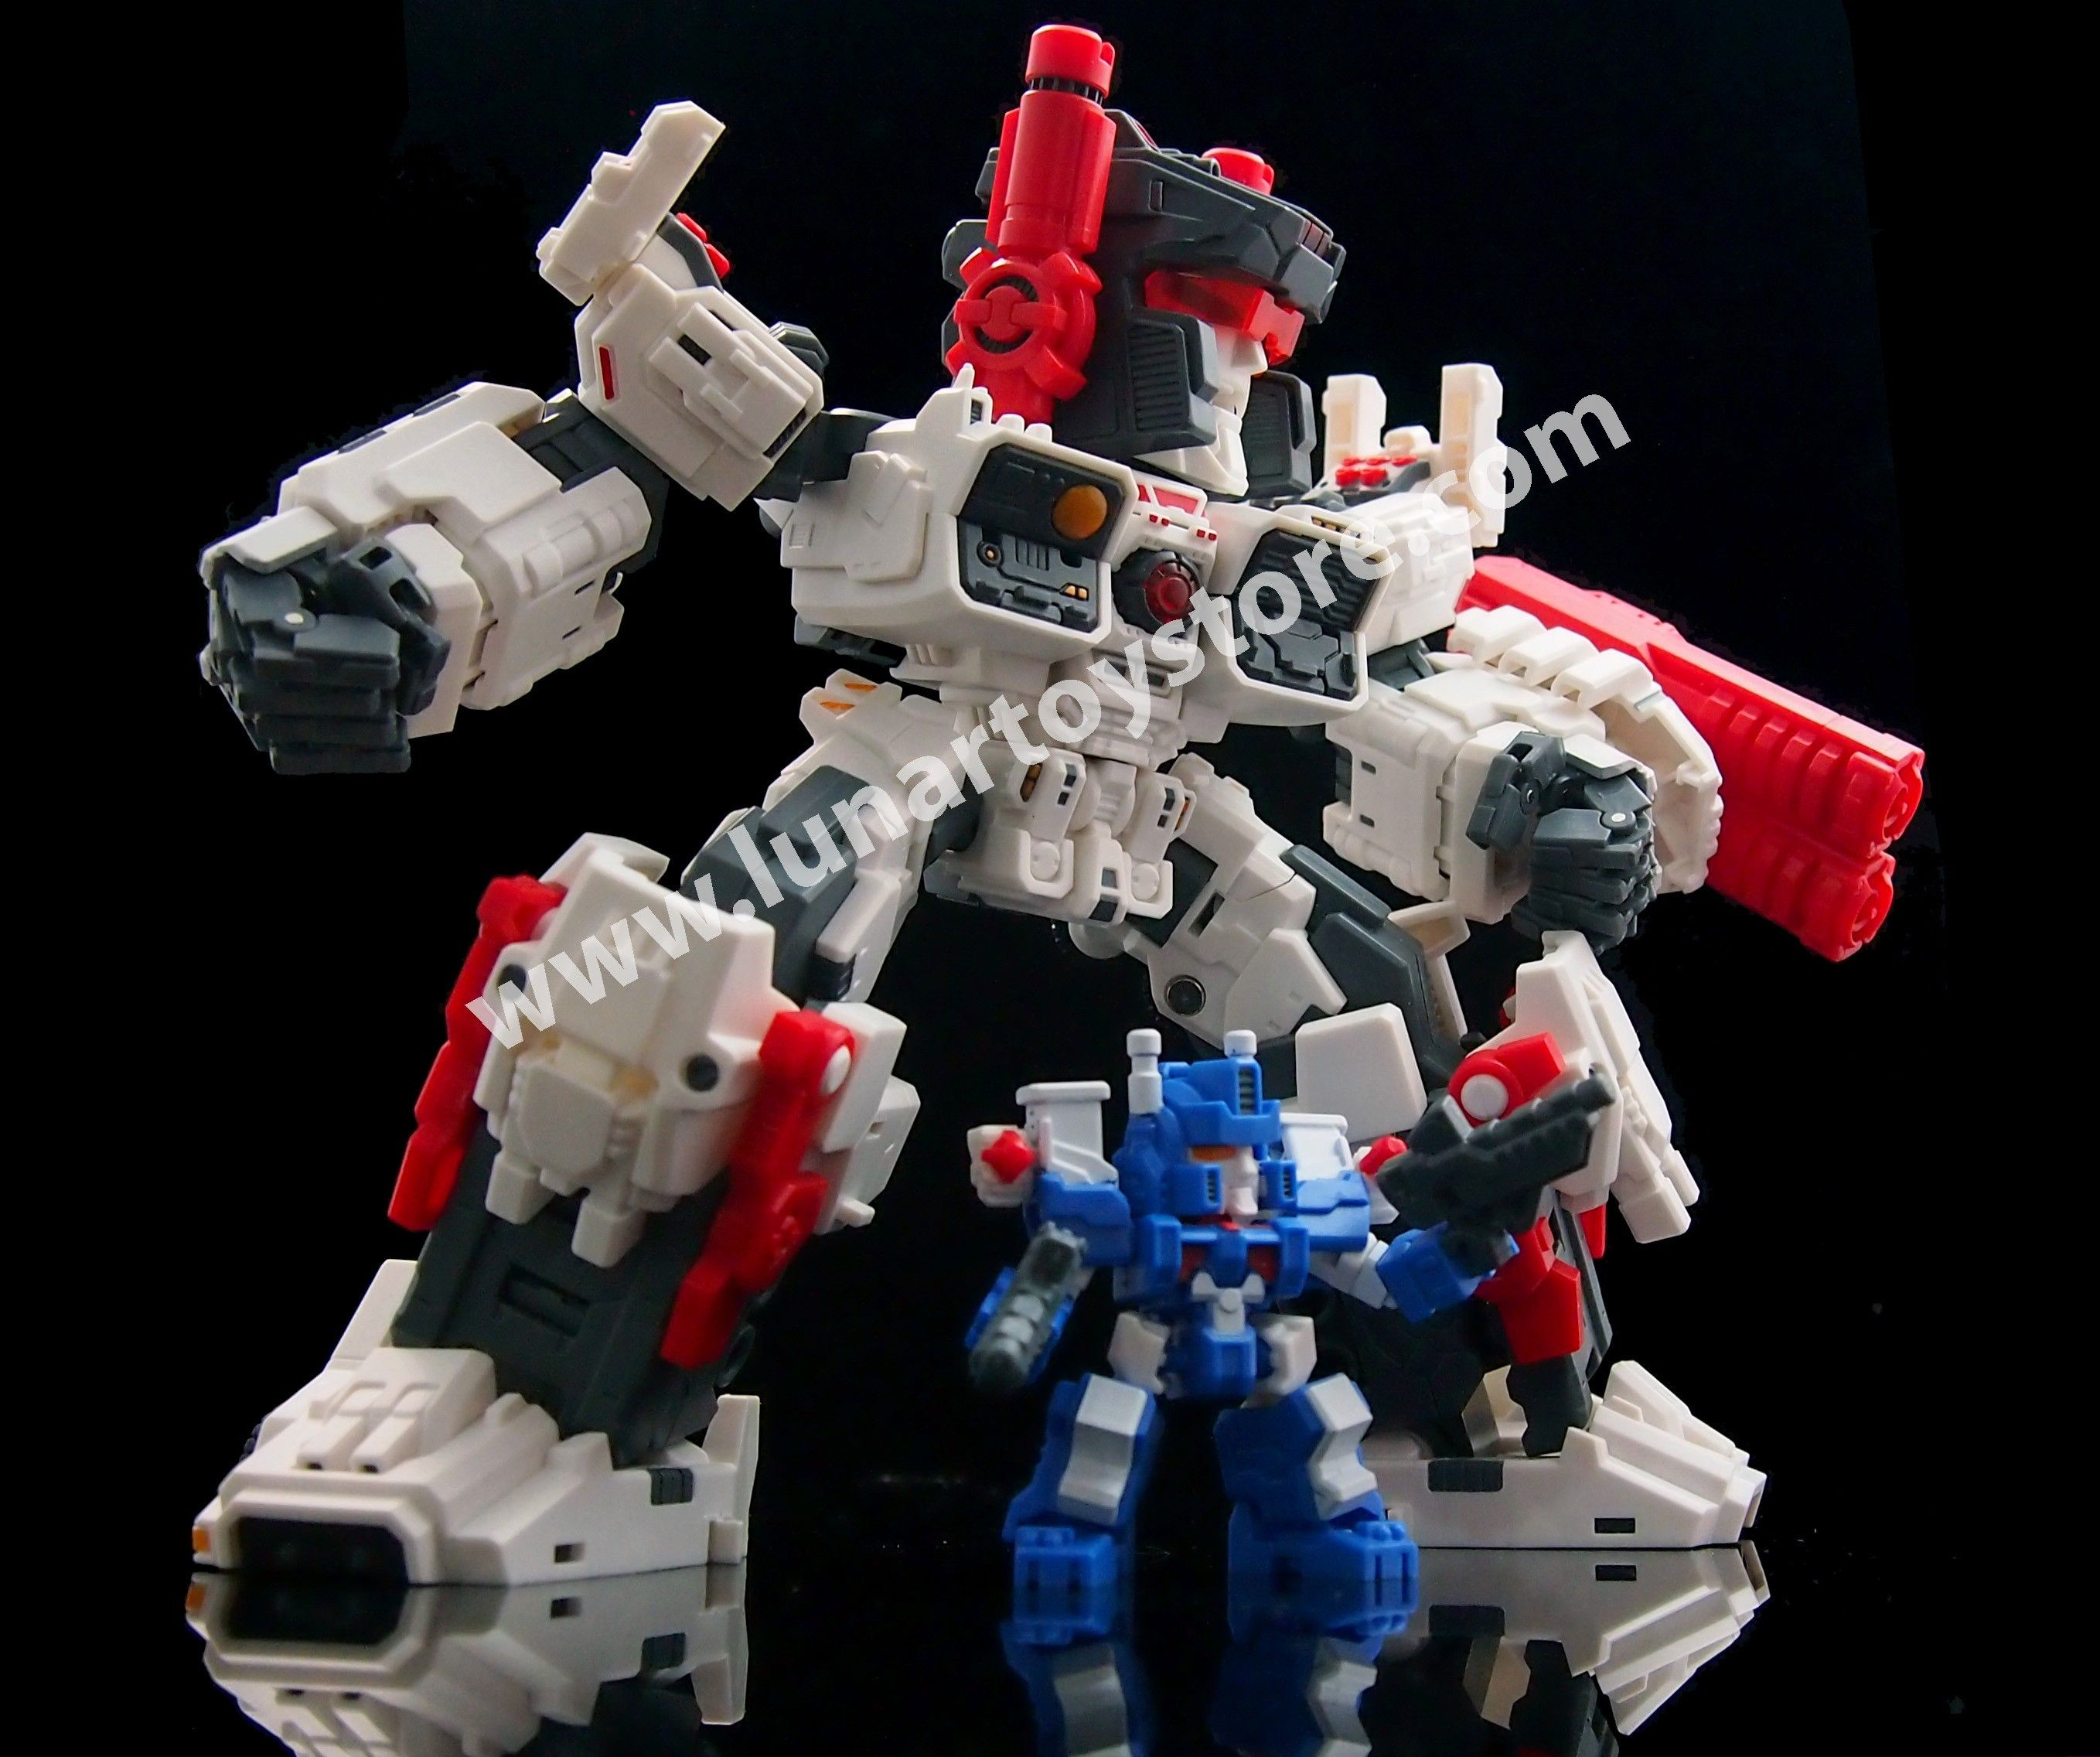 Njcc Lunar Toy Store 3rd Party Transformers Display Transformers News Toys Toy Store Party Toys